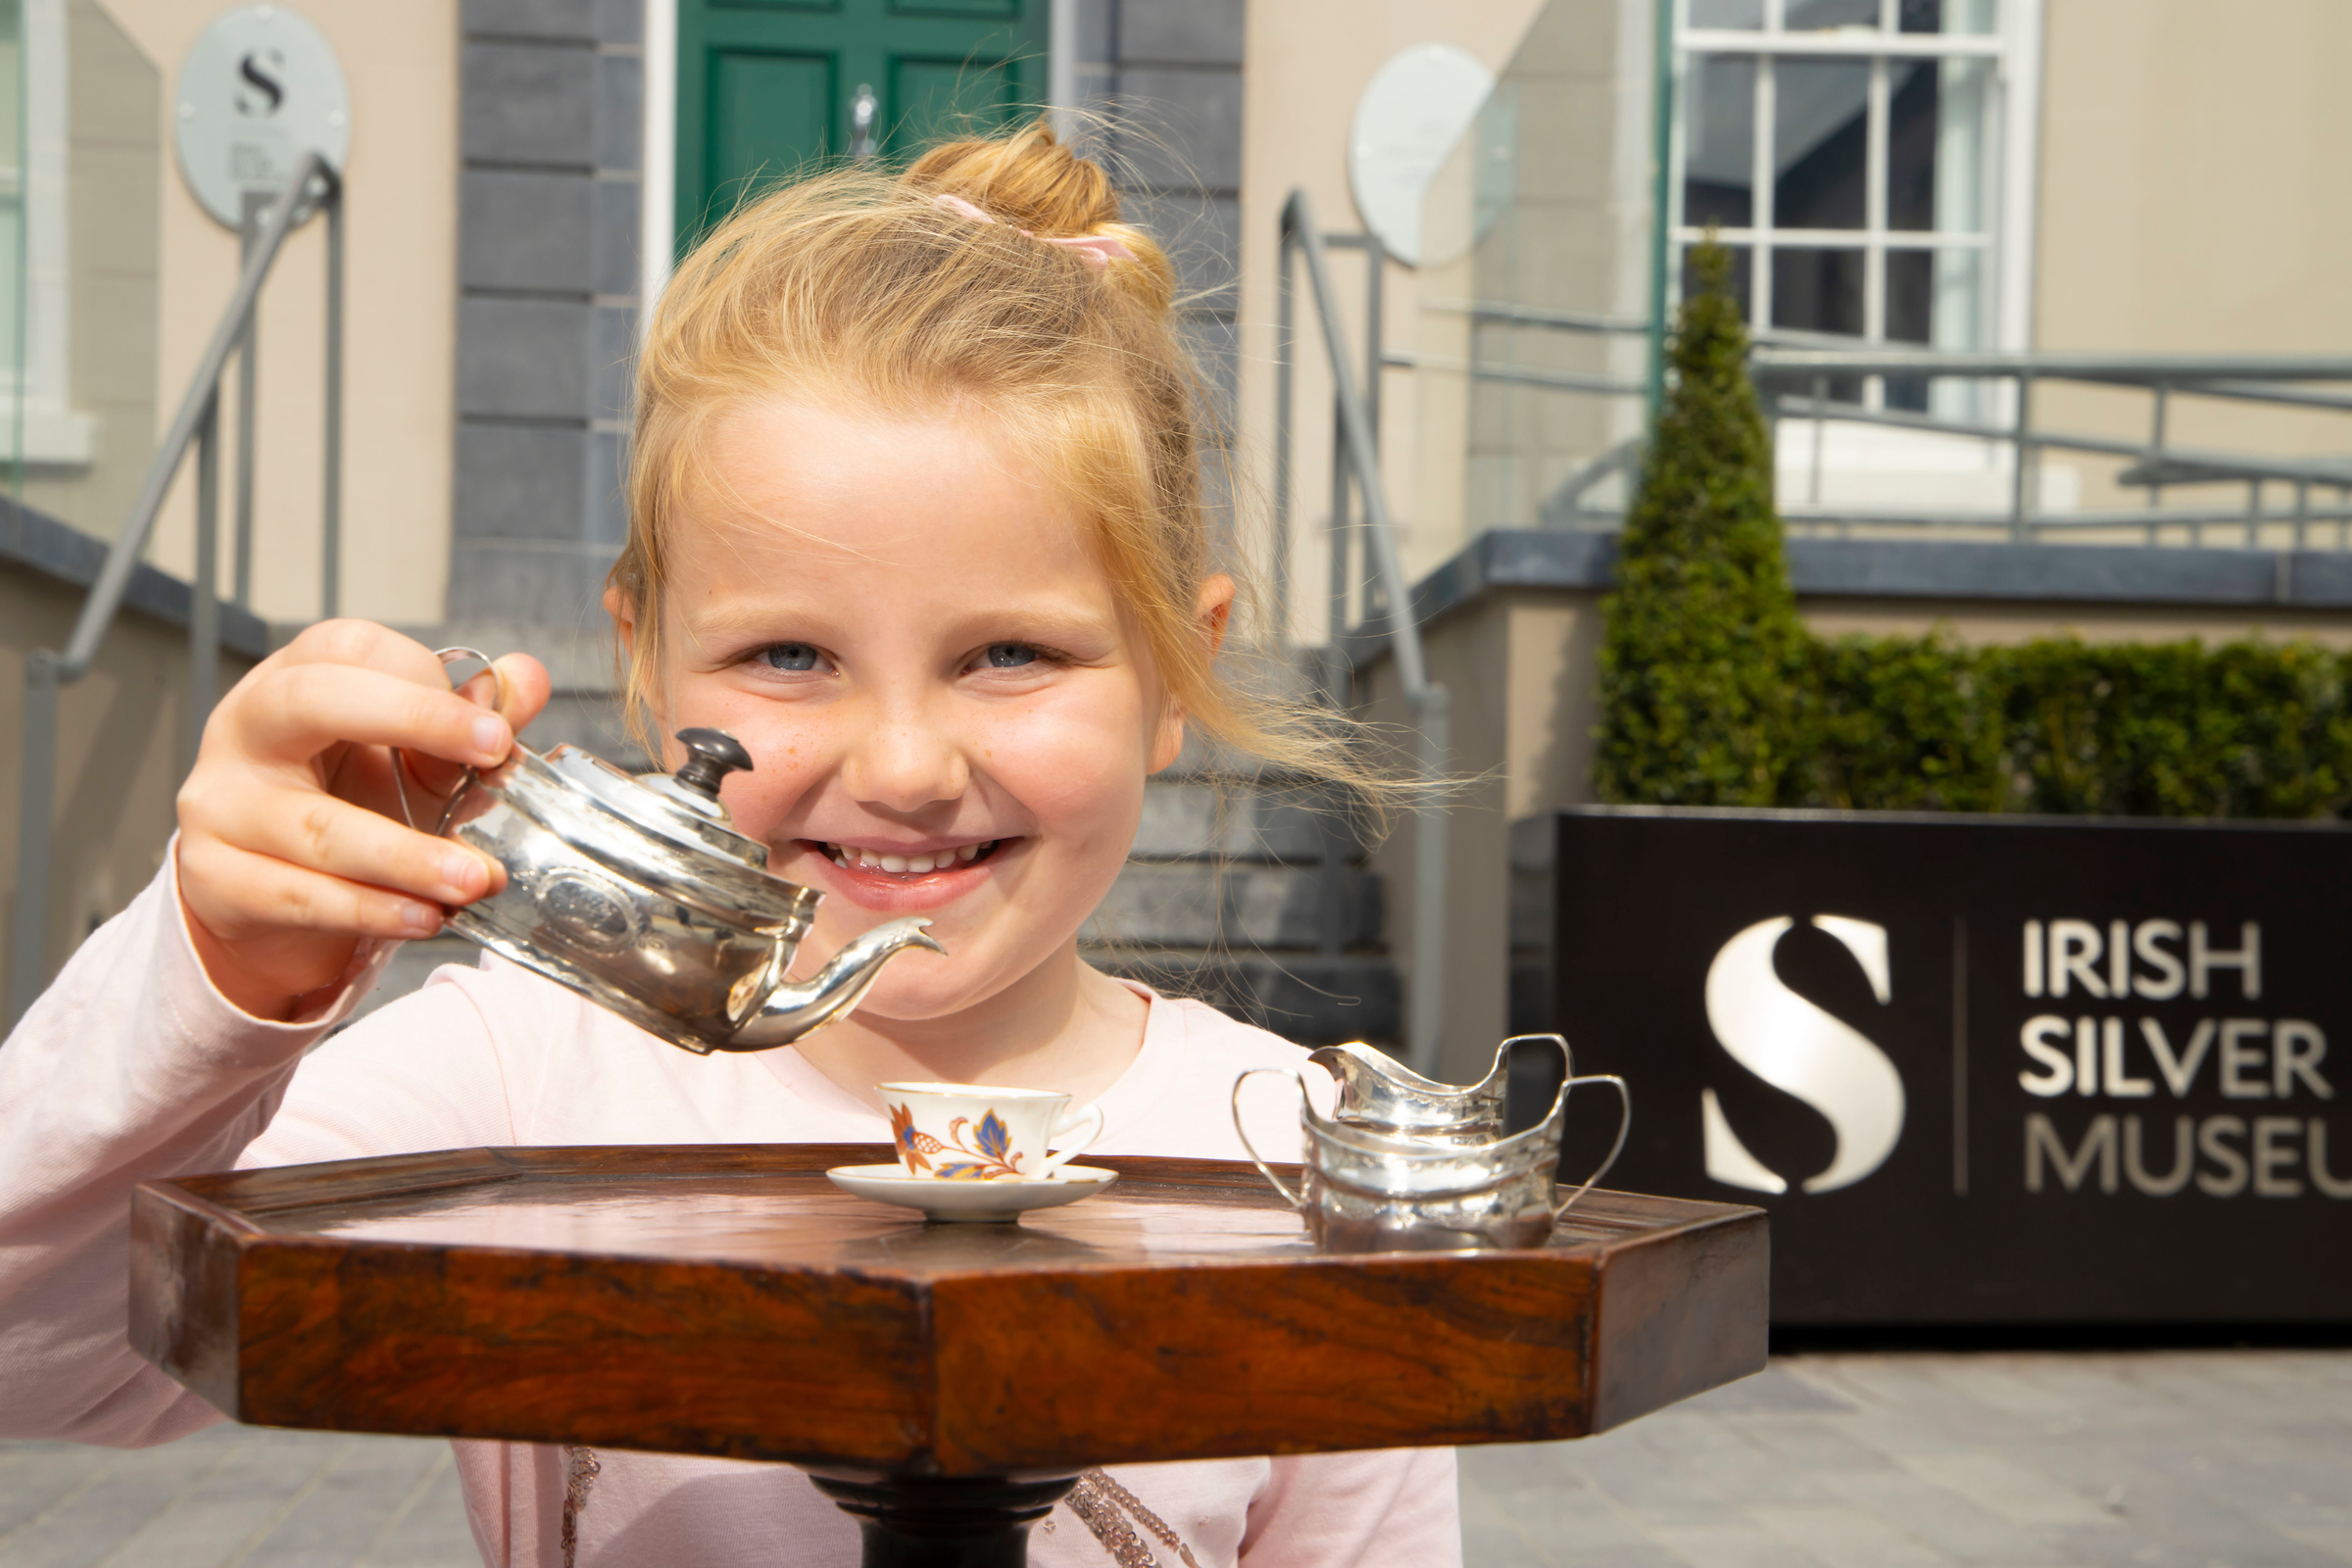 Pictured at the spectacular new Irish Silver Museum is the first visitor to the museum, Pearla Harper from Tramore (age 5). The museum is home to one of the largest collections of Irish silver in the world and is officially opened today (June 24th) by Minister for Finance Paschal Donohoe.